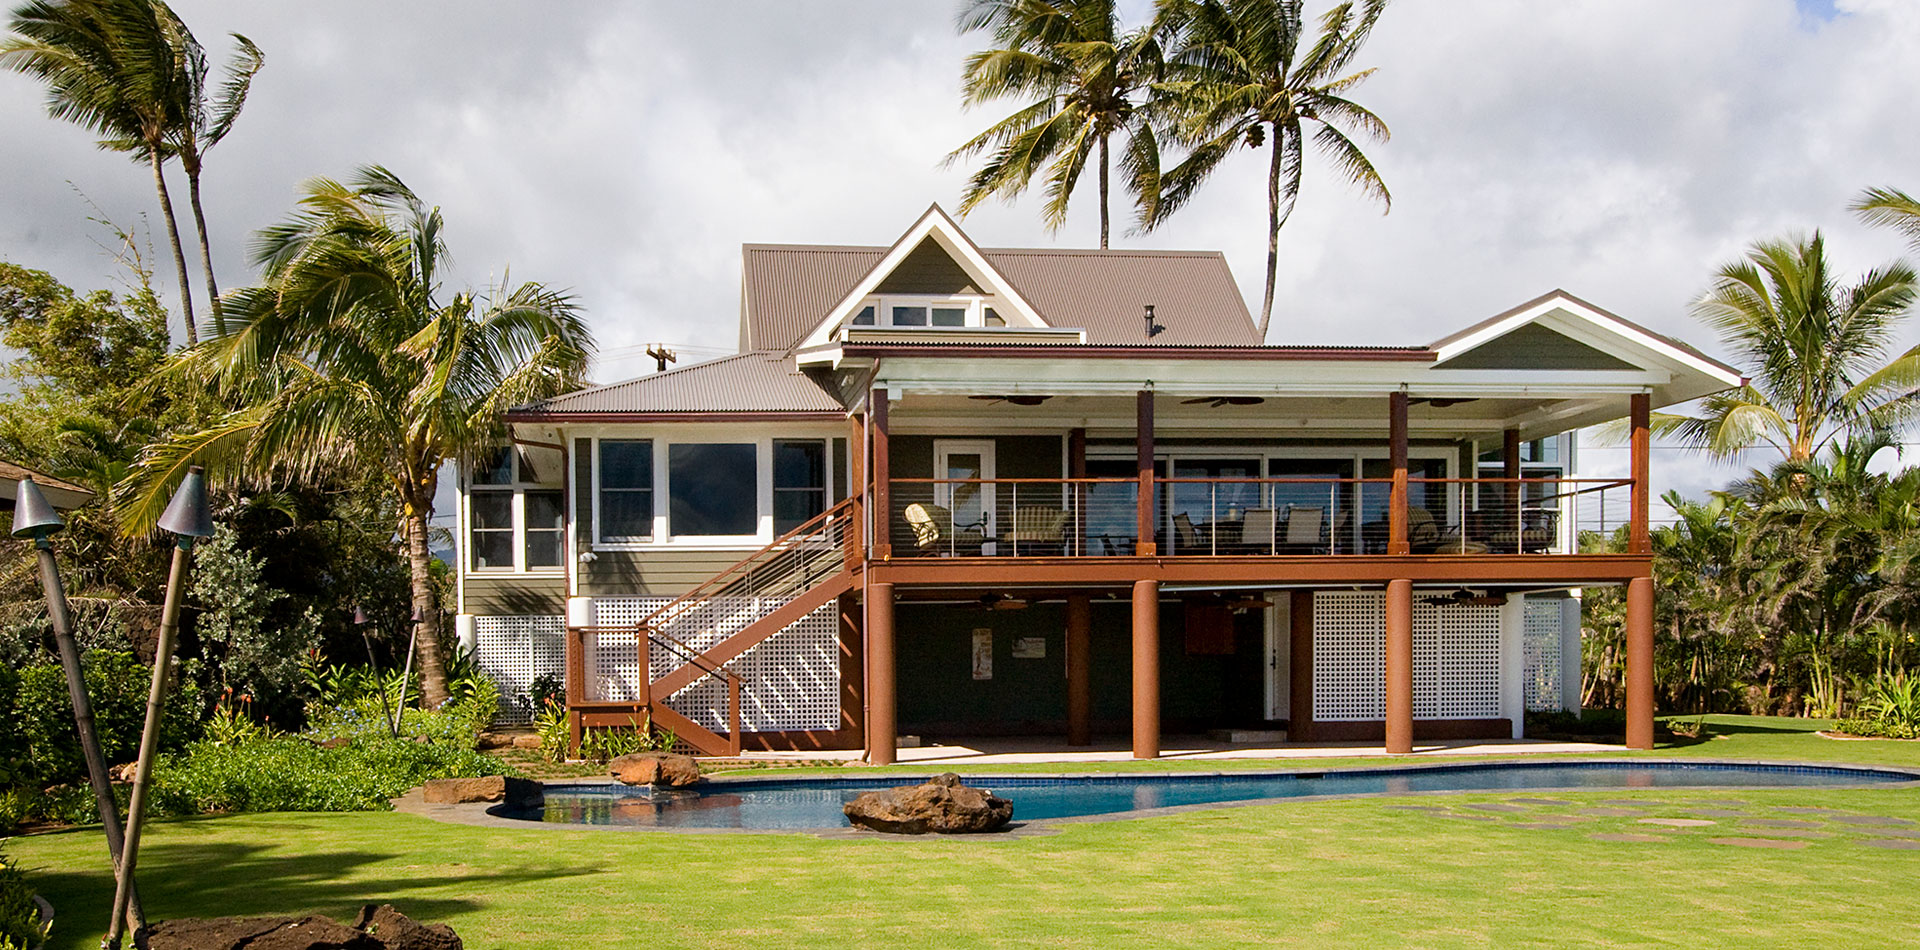 Luxury Home Construction - Poipu Kauai - Schurch Construction Kauai Hawaii